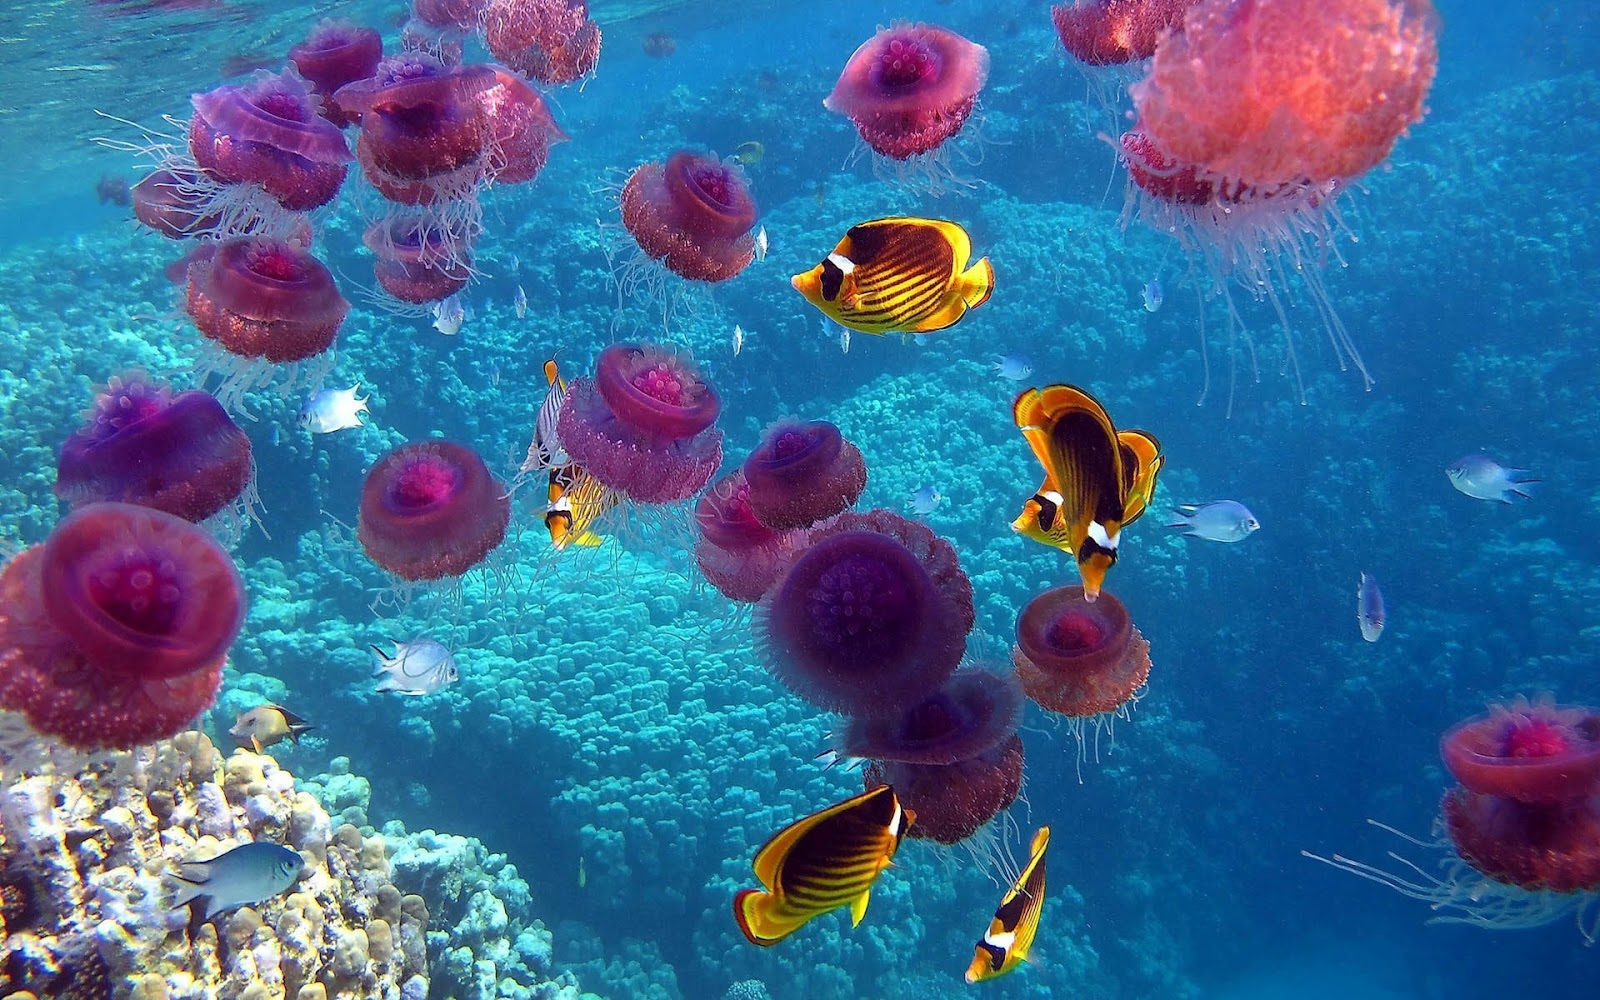 hd-jellyfish-wallpaper-with-pink-jellyfish-swimming-underwater-with-lots-of-tropical-fish-jellyfish-wallpapers-backgrounds-pictures-photos.jpg